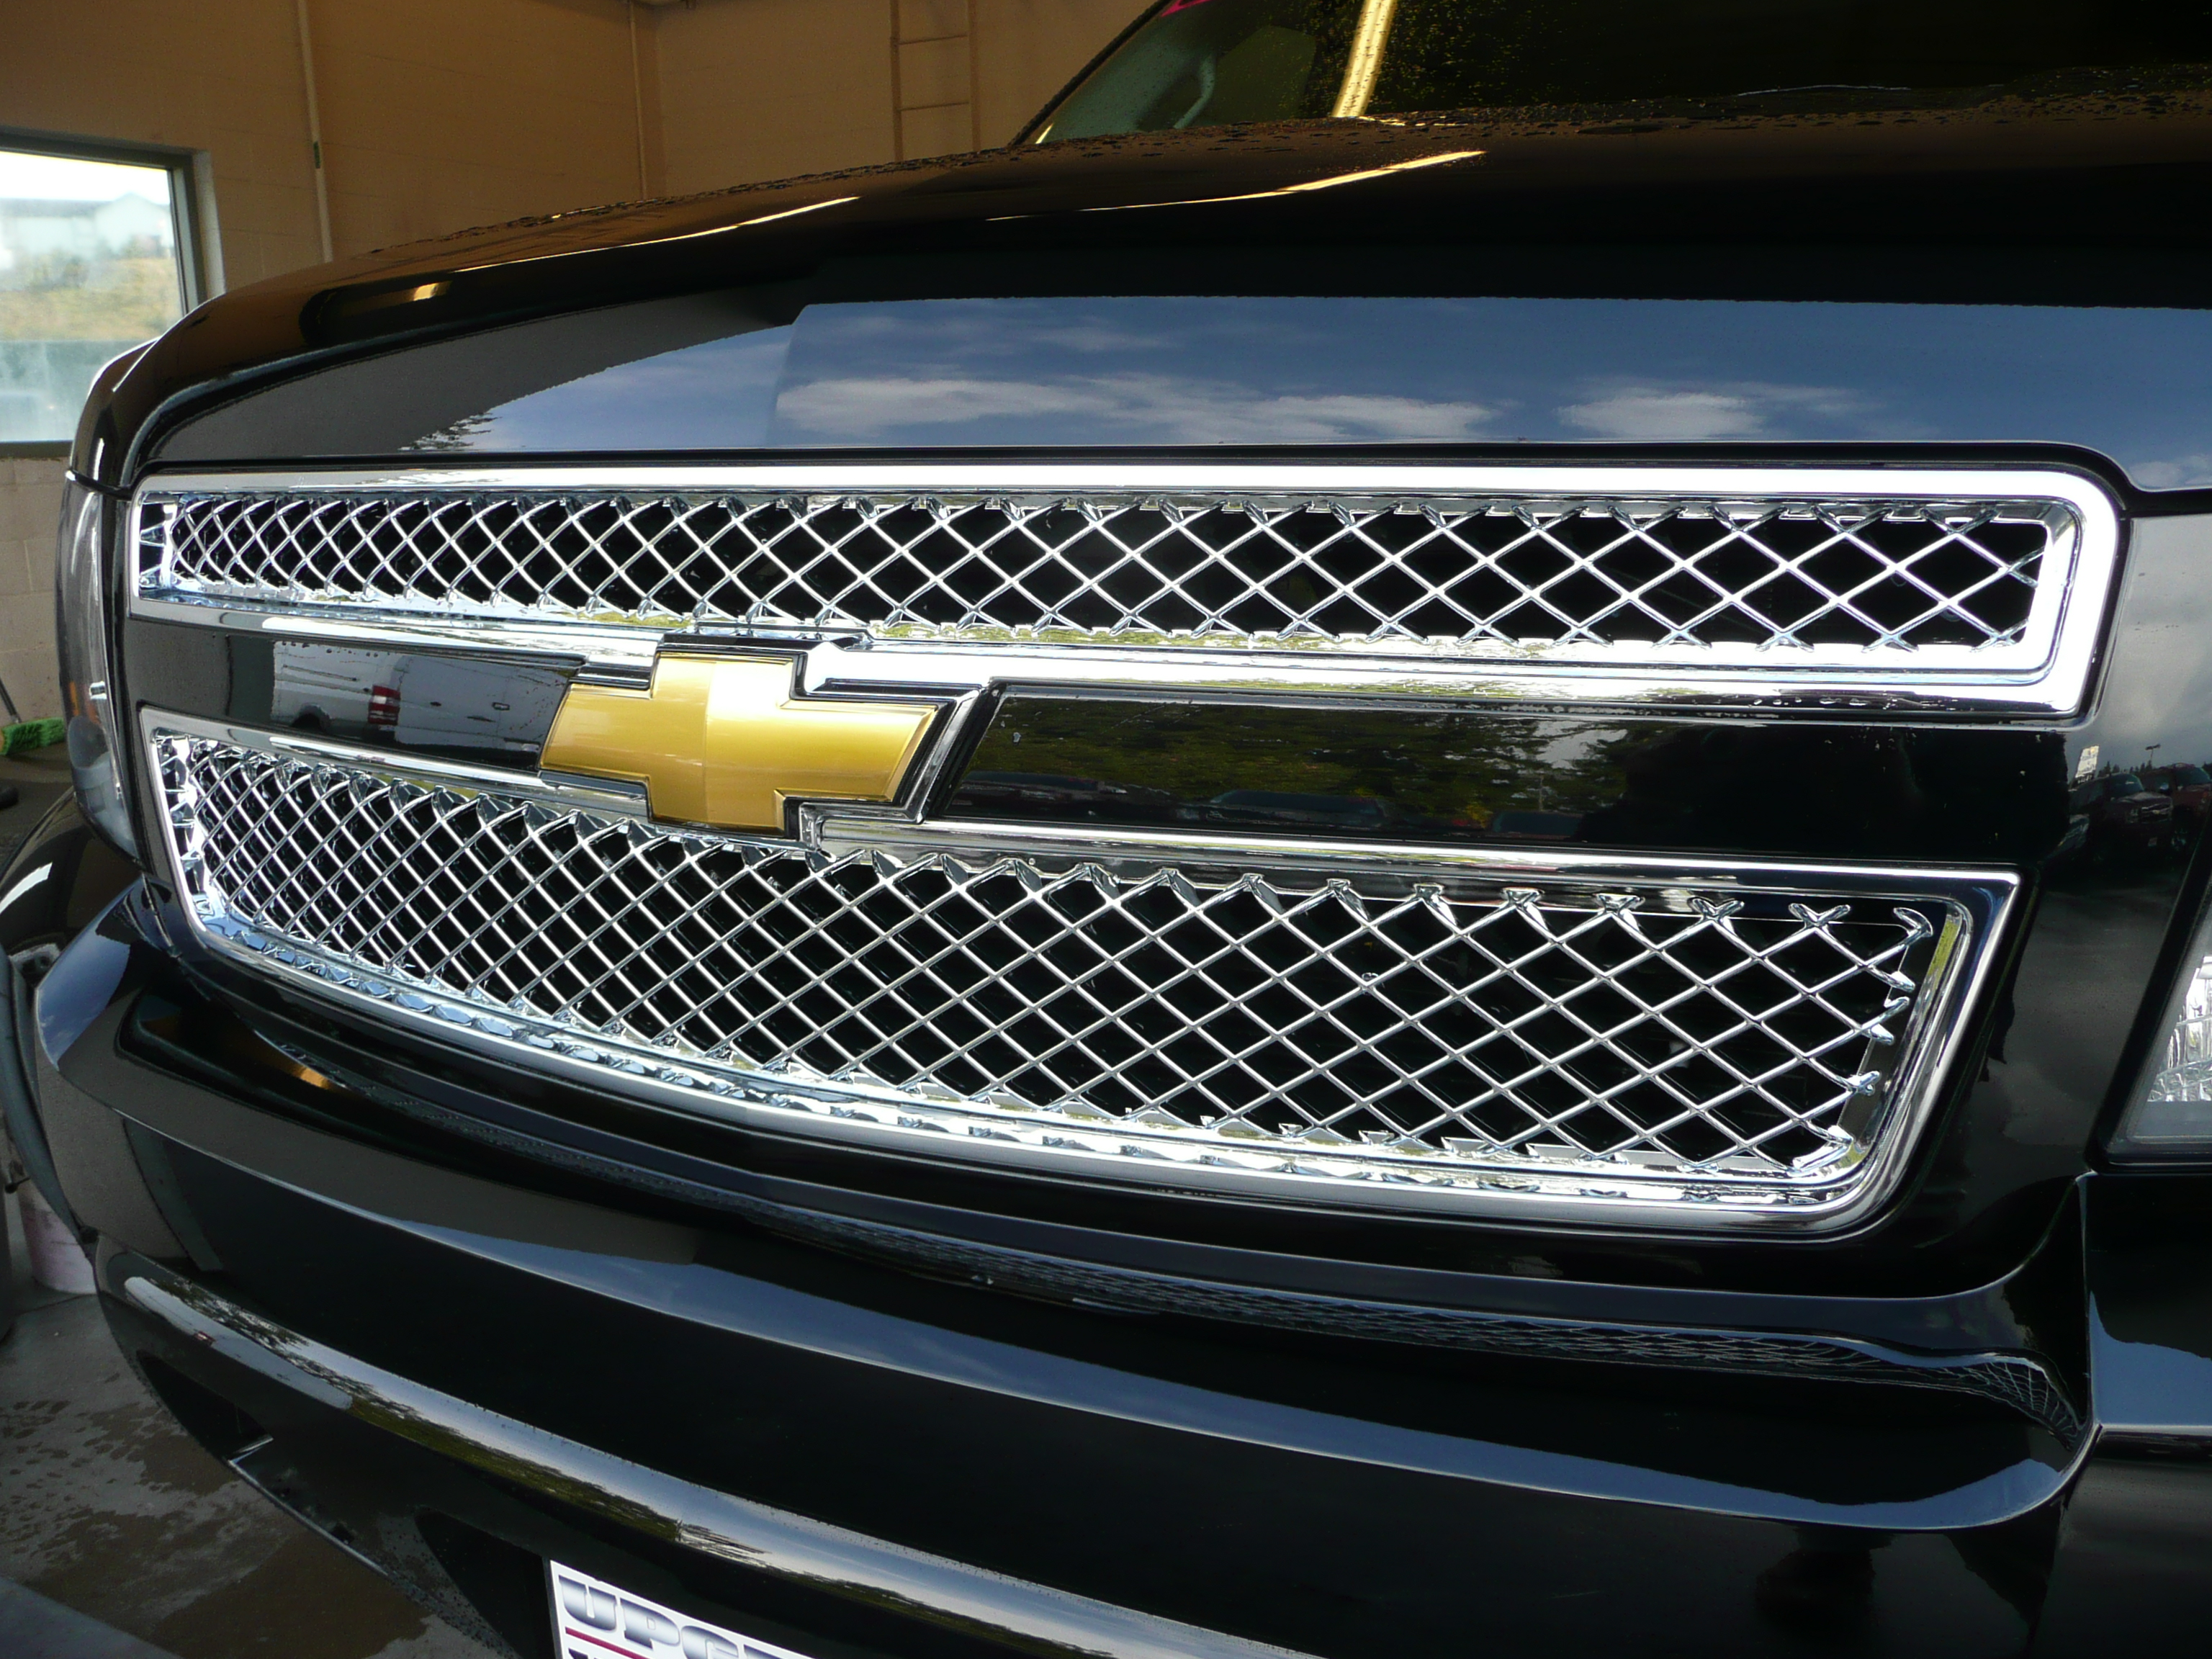 Chevy Suv Models >> 2pc Chrome ABS Mesh Grille Insert for 2007-2014 Chevy Tahoe LS, LT | eBay